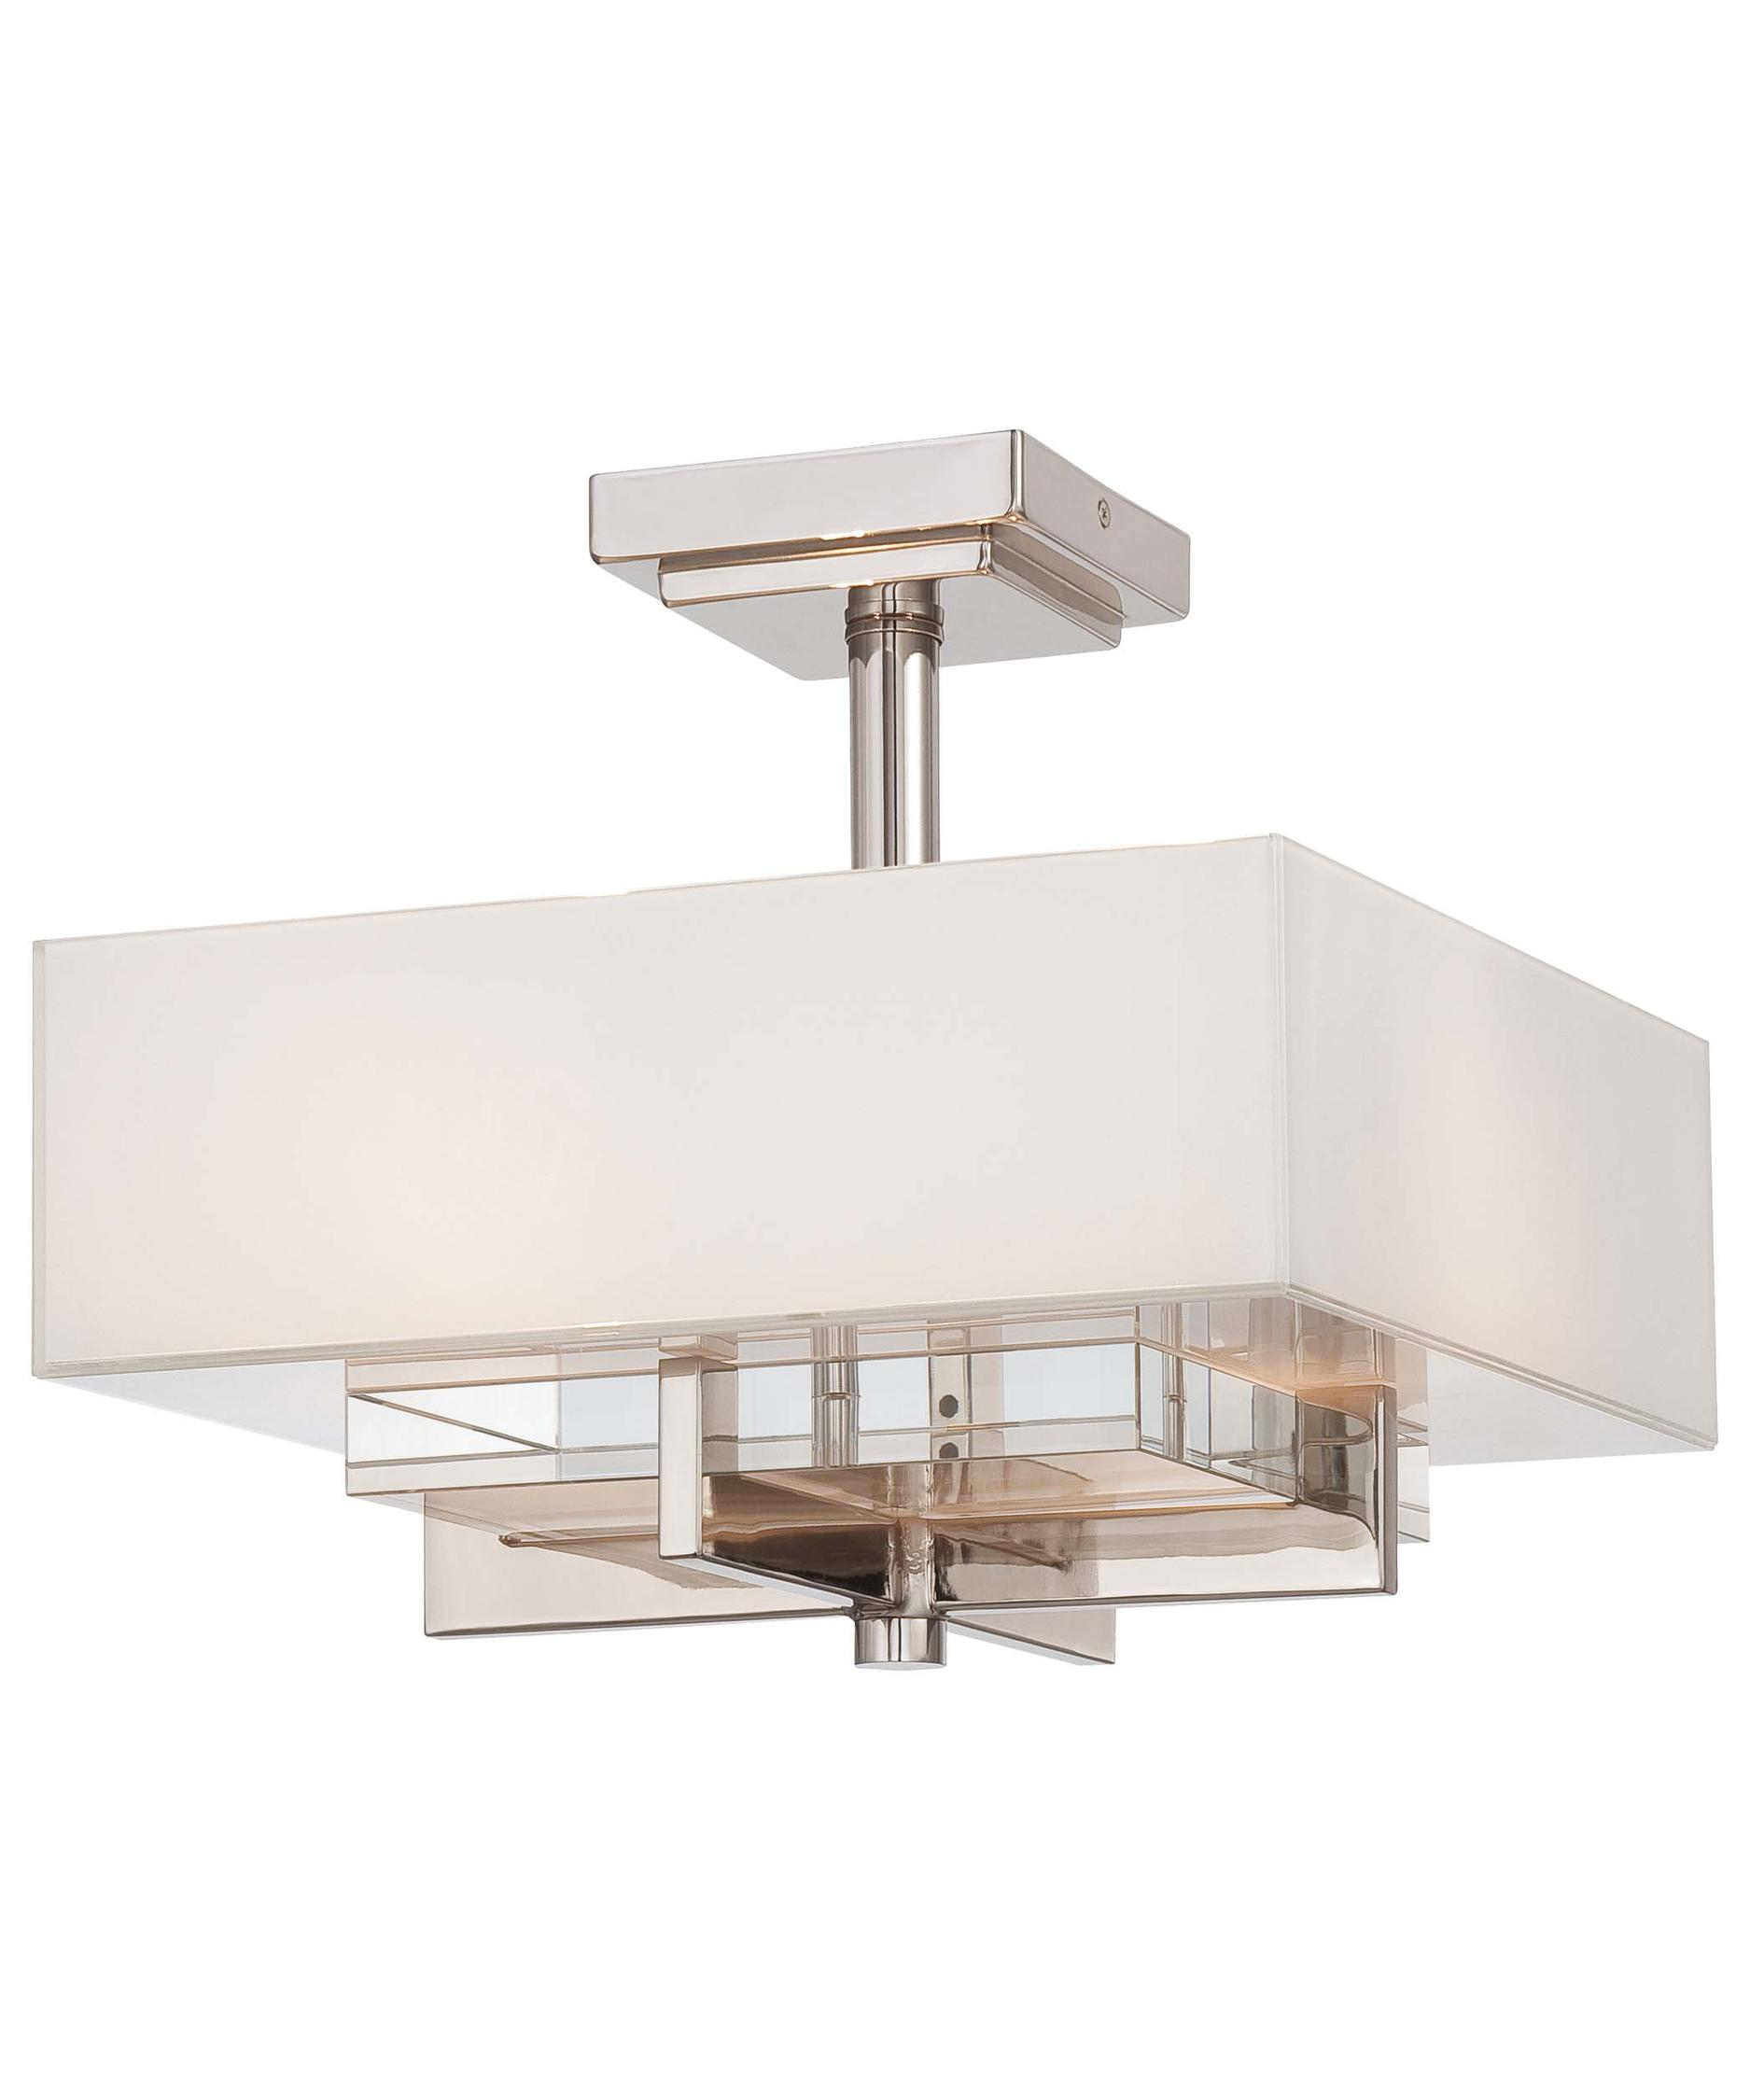 Metropolitan N Eden Roe Inch Wide Semi Flush Mount   Metropolitan Kitchen  And Bath Awesome Ideas